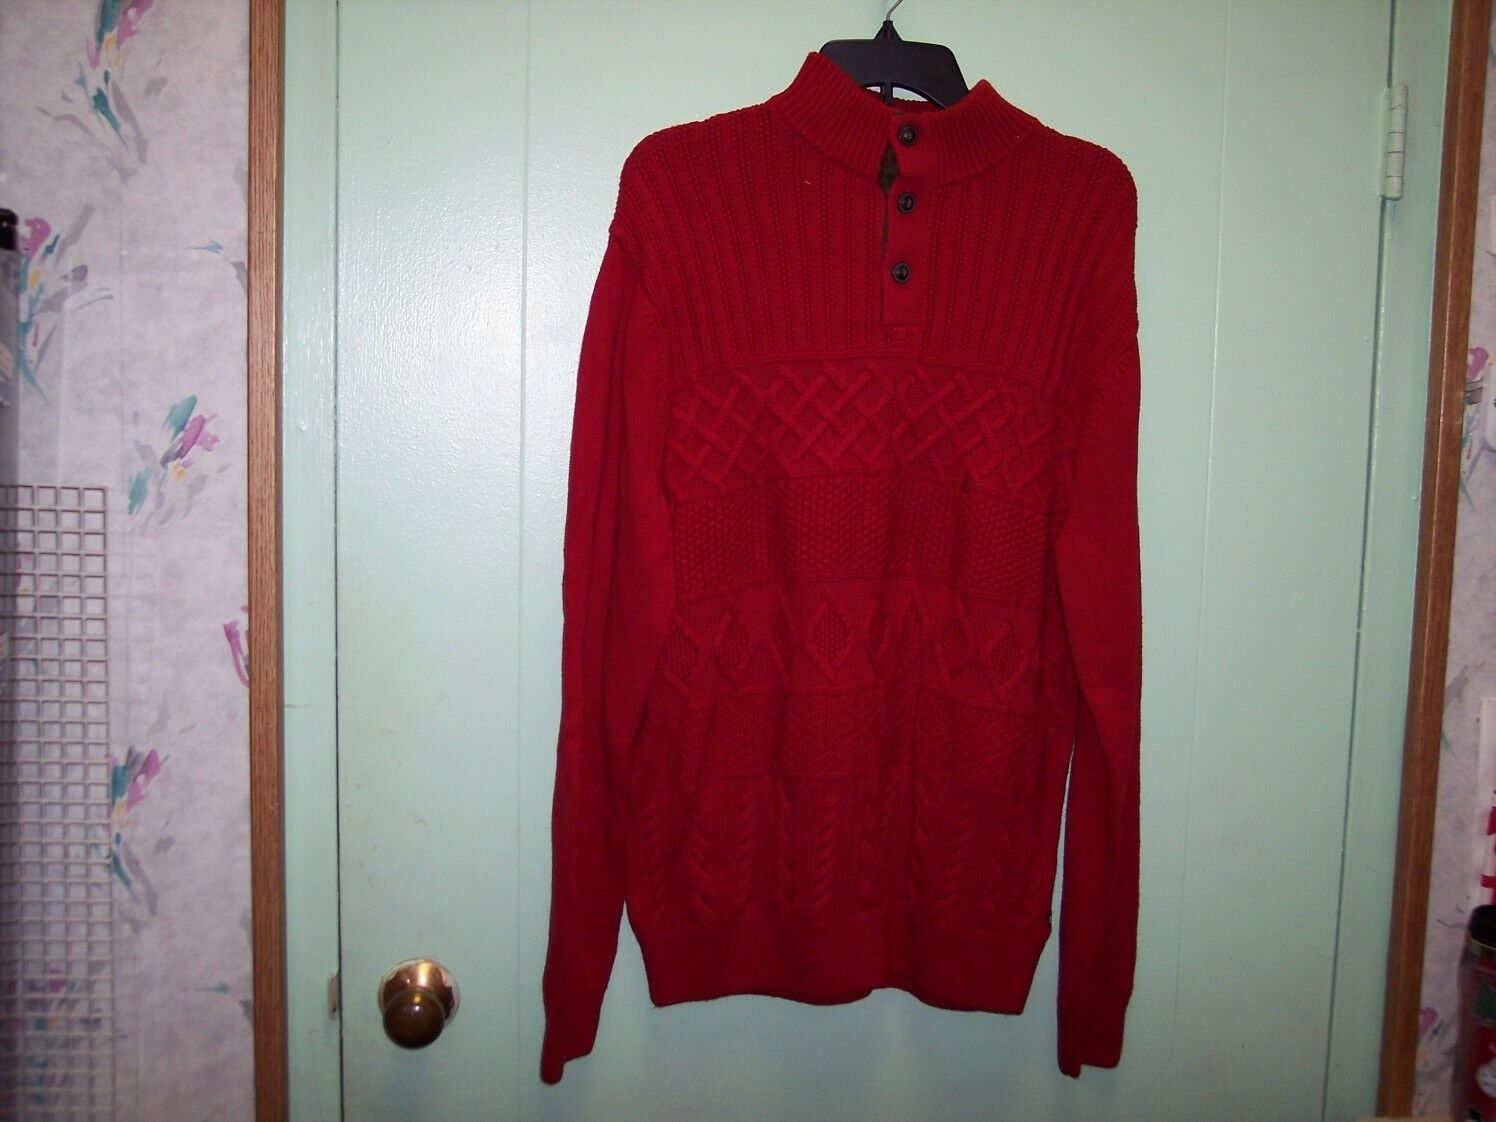 CHAPS MEN'S RED BUTTON UP SWEATER SIZE LARGE BRAND NEW